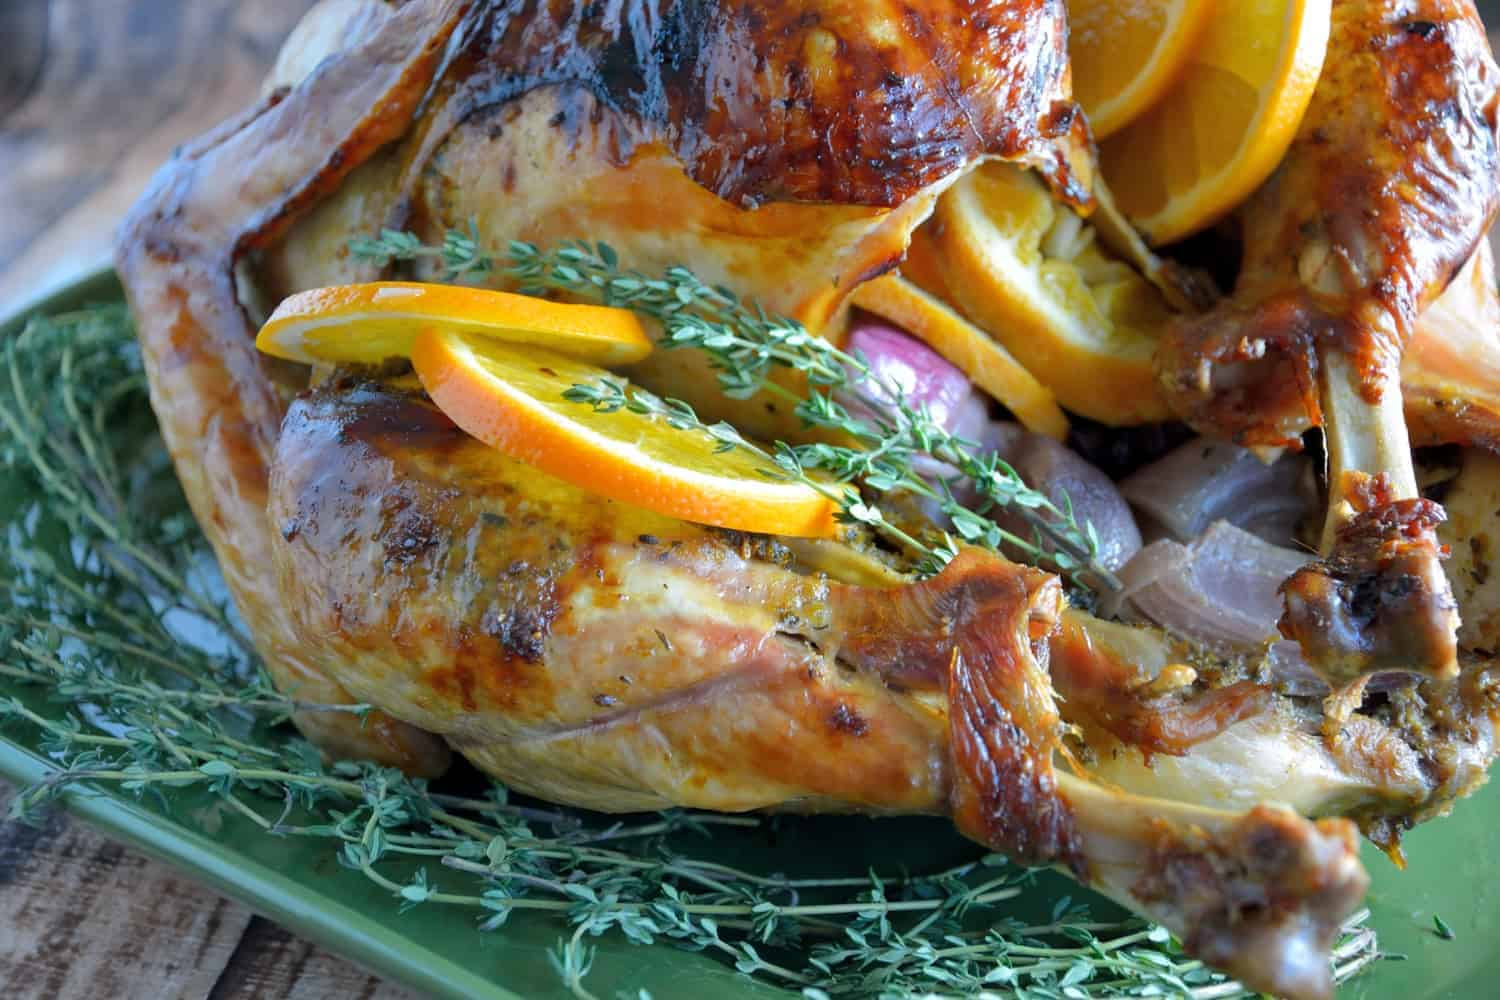 Orange Thyme Turkey is the BEST roasted turkey recipe for juicy turkey and guaranteed to give you the best drippings to make a flavorful gravy.  #roastturkey #thanksgiving www.savoryexperiments.com